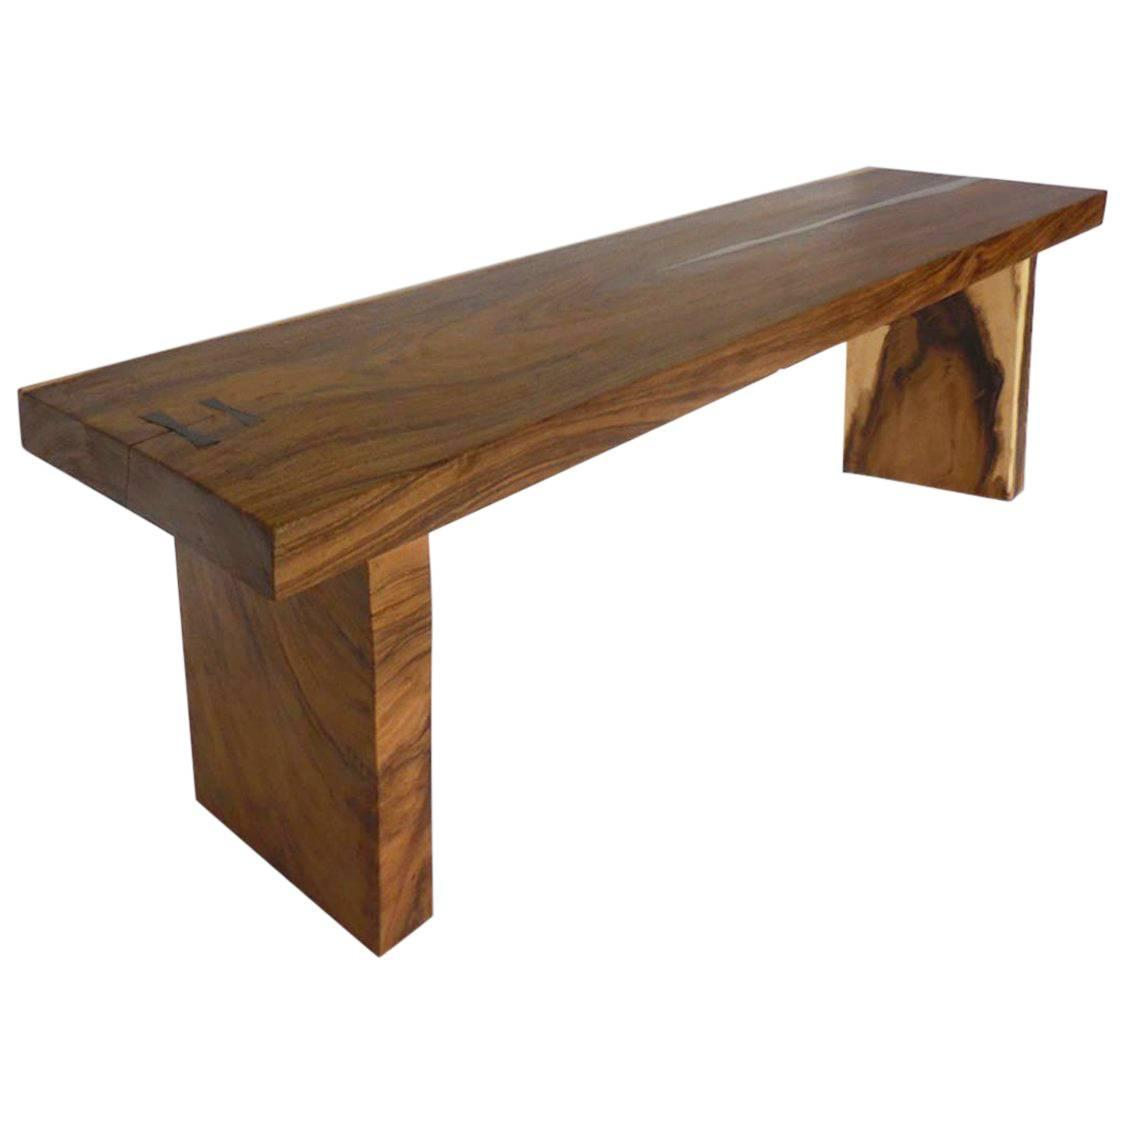 Rustic organic asian teak wood console table for sale at 1stdibs organic modern wood slab console table with pewter inlay geotapseo Image collections